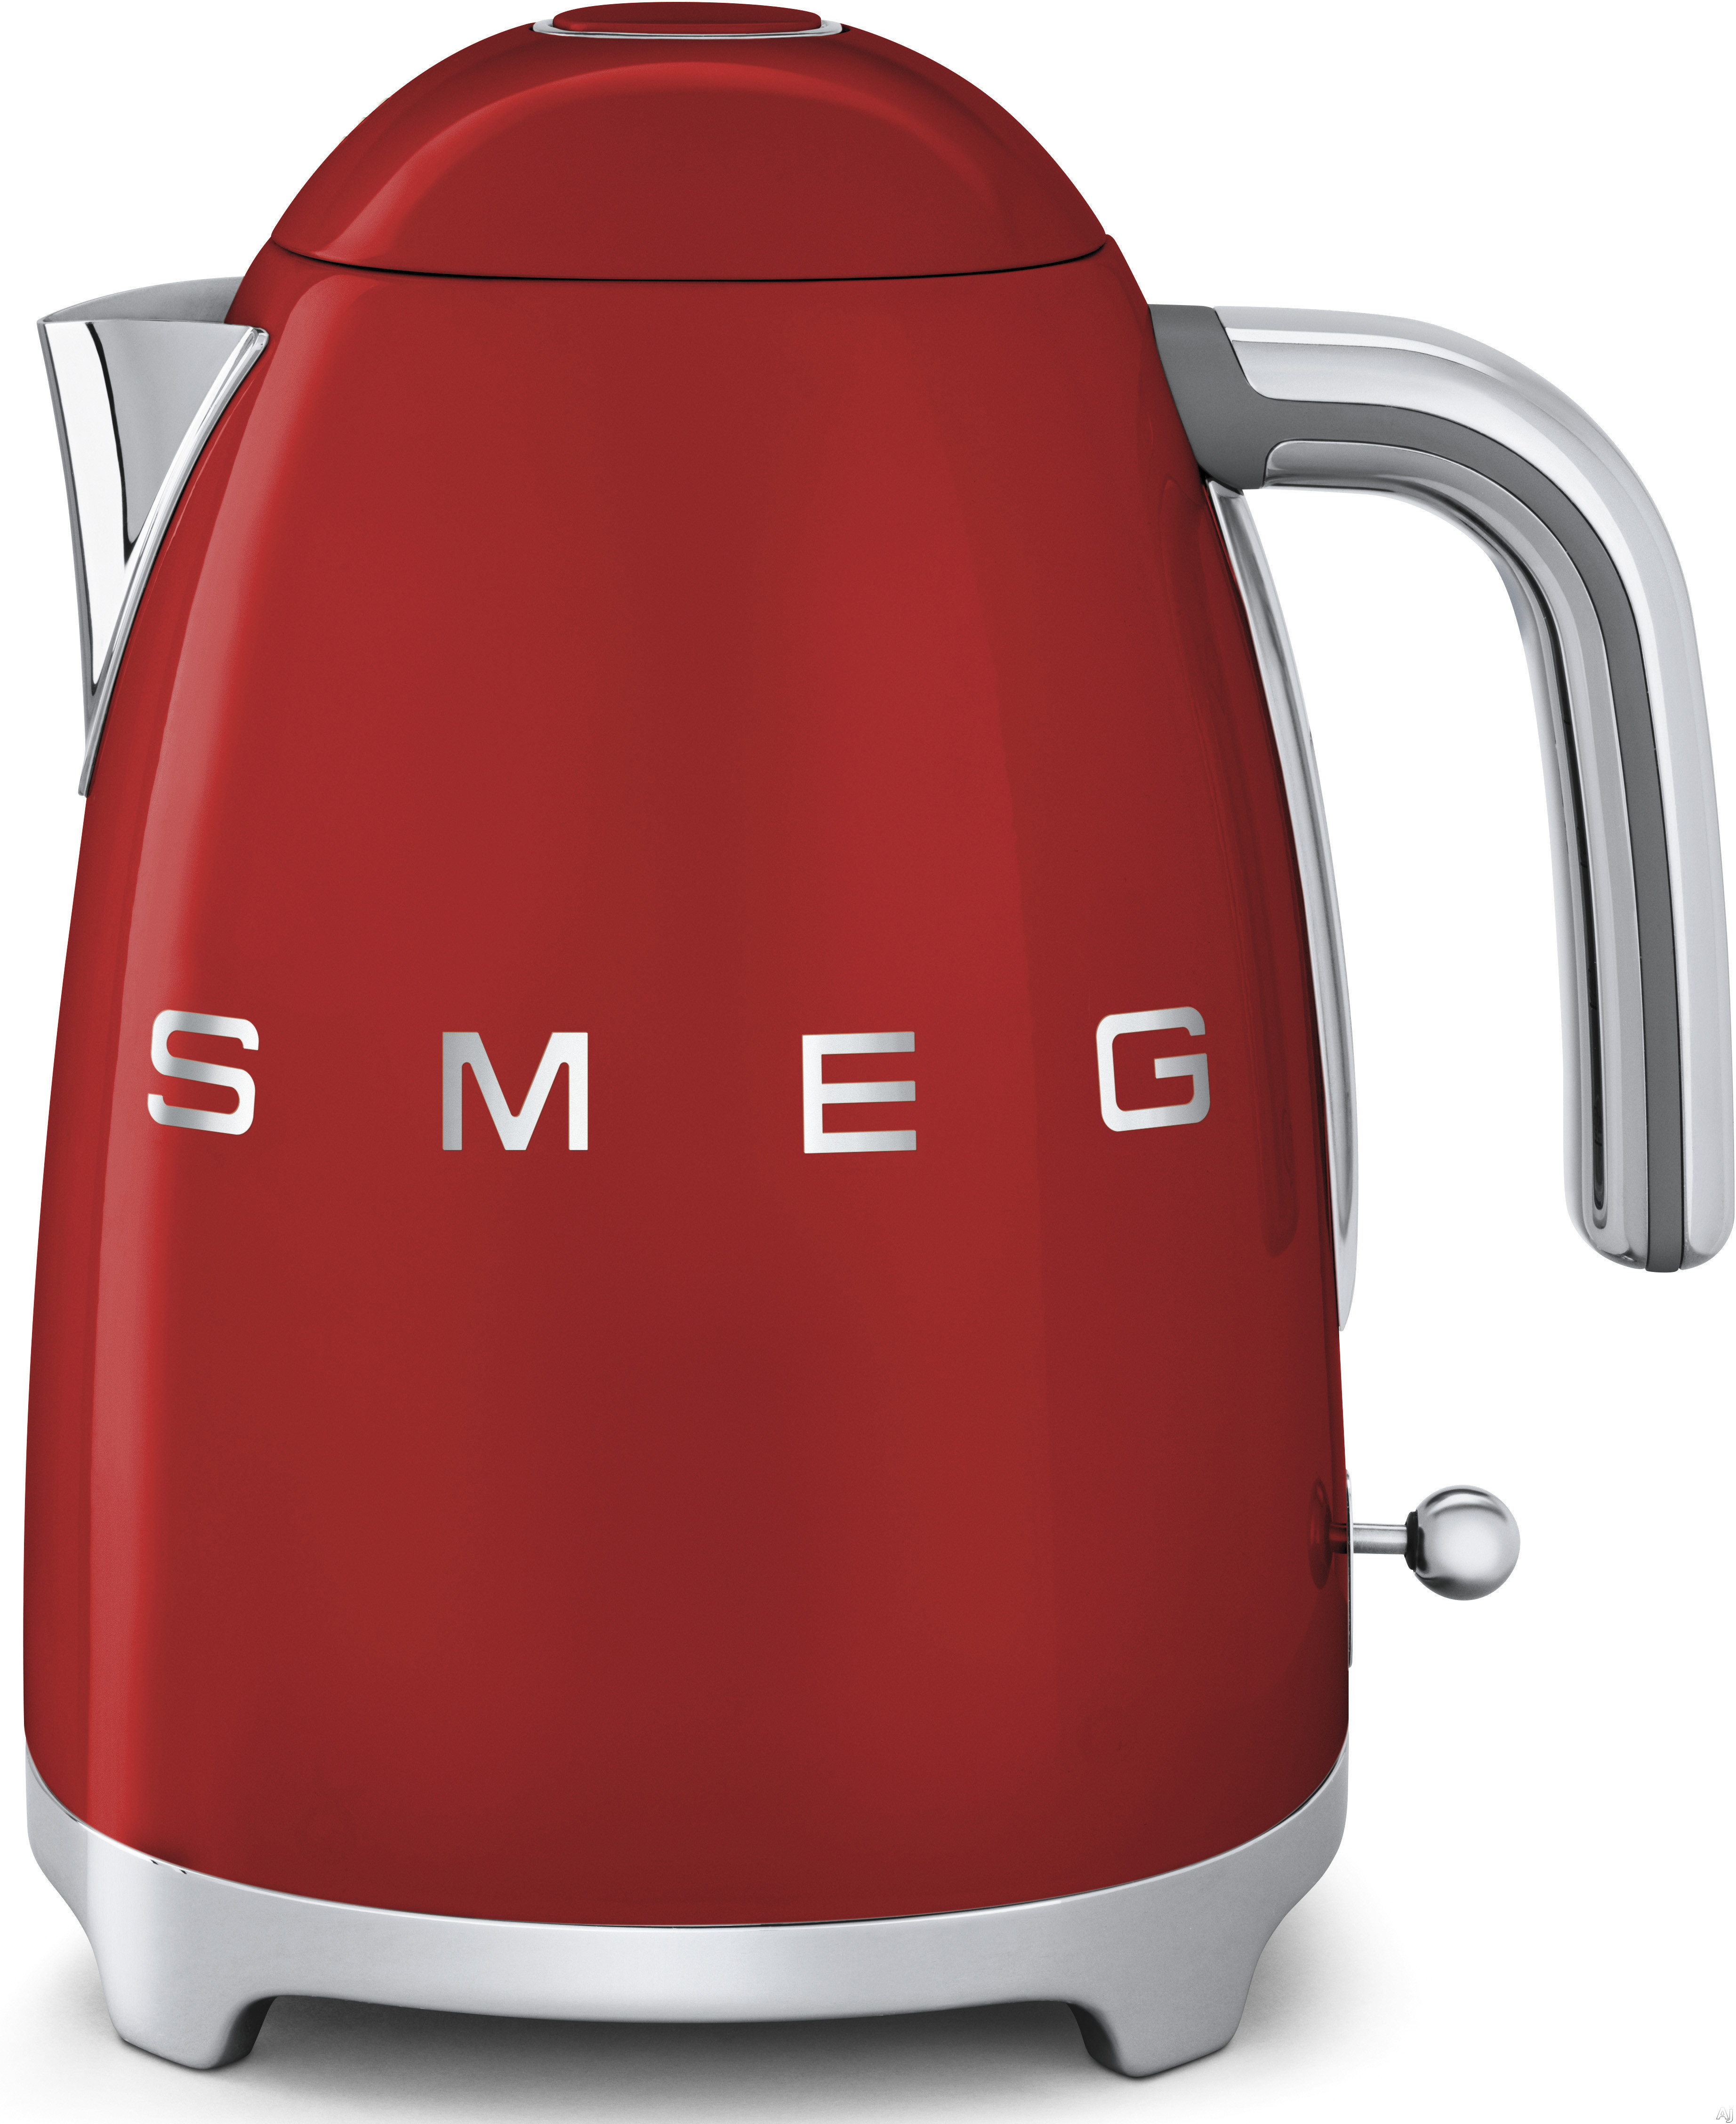 Smeg 50 s Retro Design KLF01RDUS Electric Kettle with 56 oz. Capacity Soft Opening Lid Auto Shut Off 360 Degree Swivel Base Anti Slip Feet and Built in Cord Wrap Red